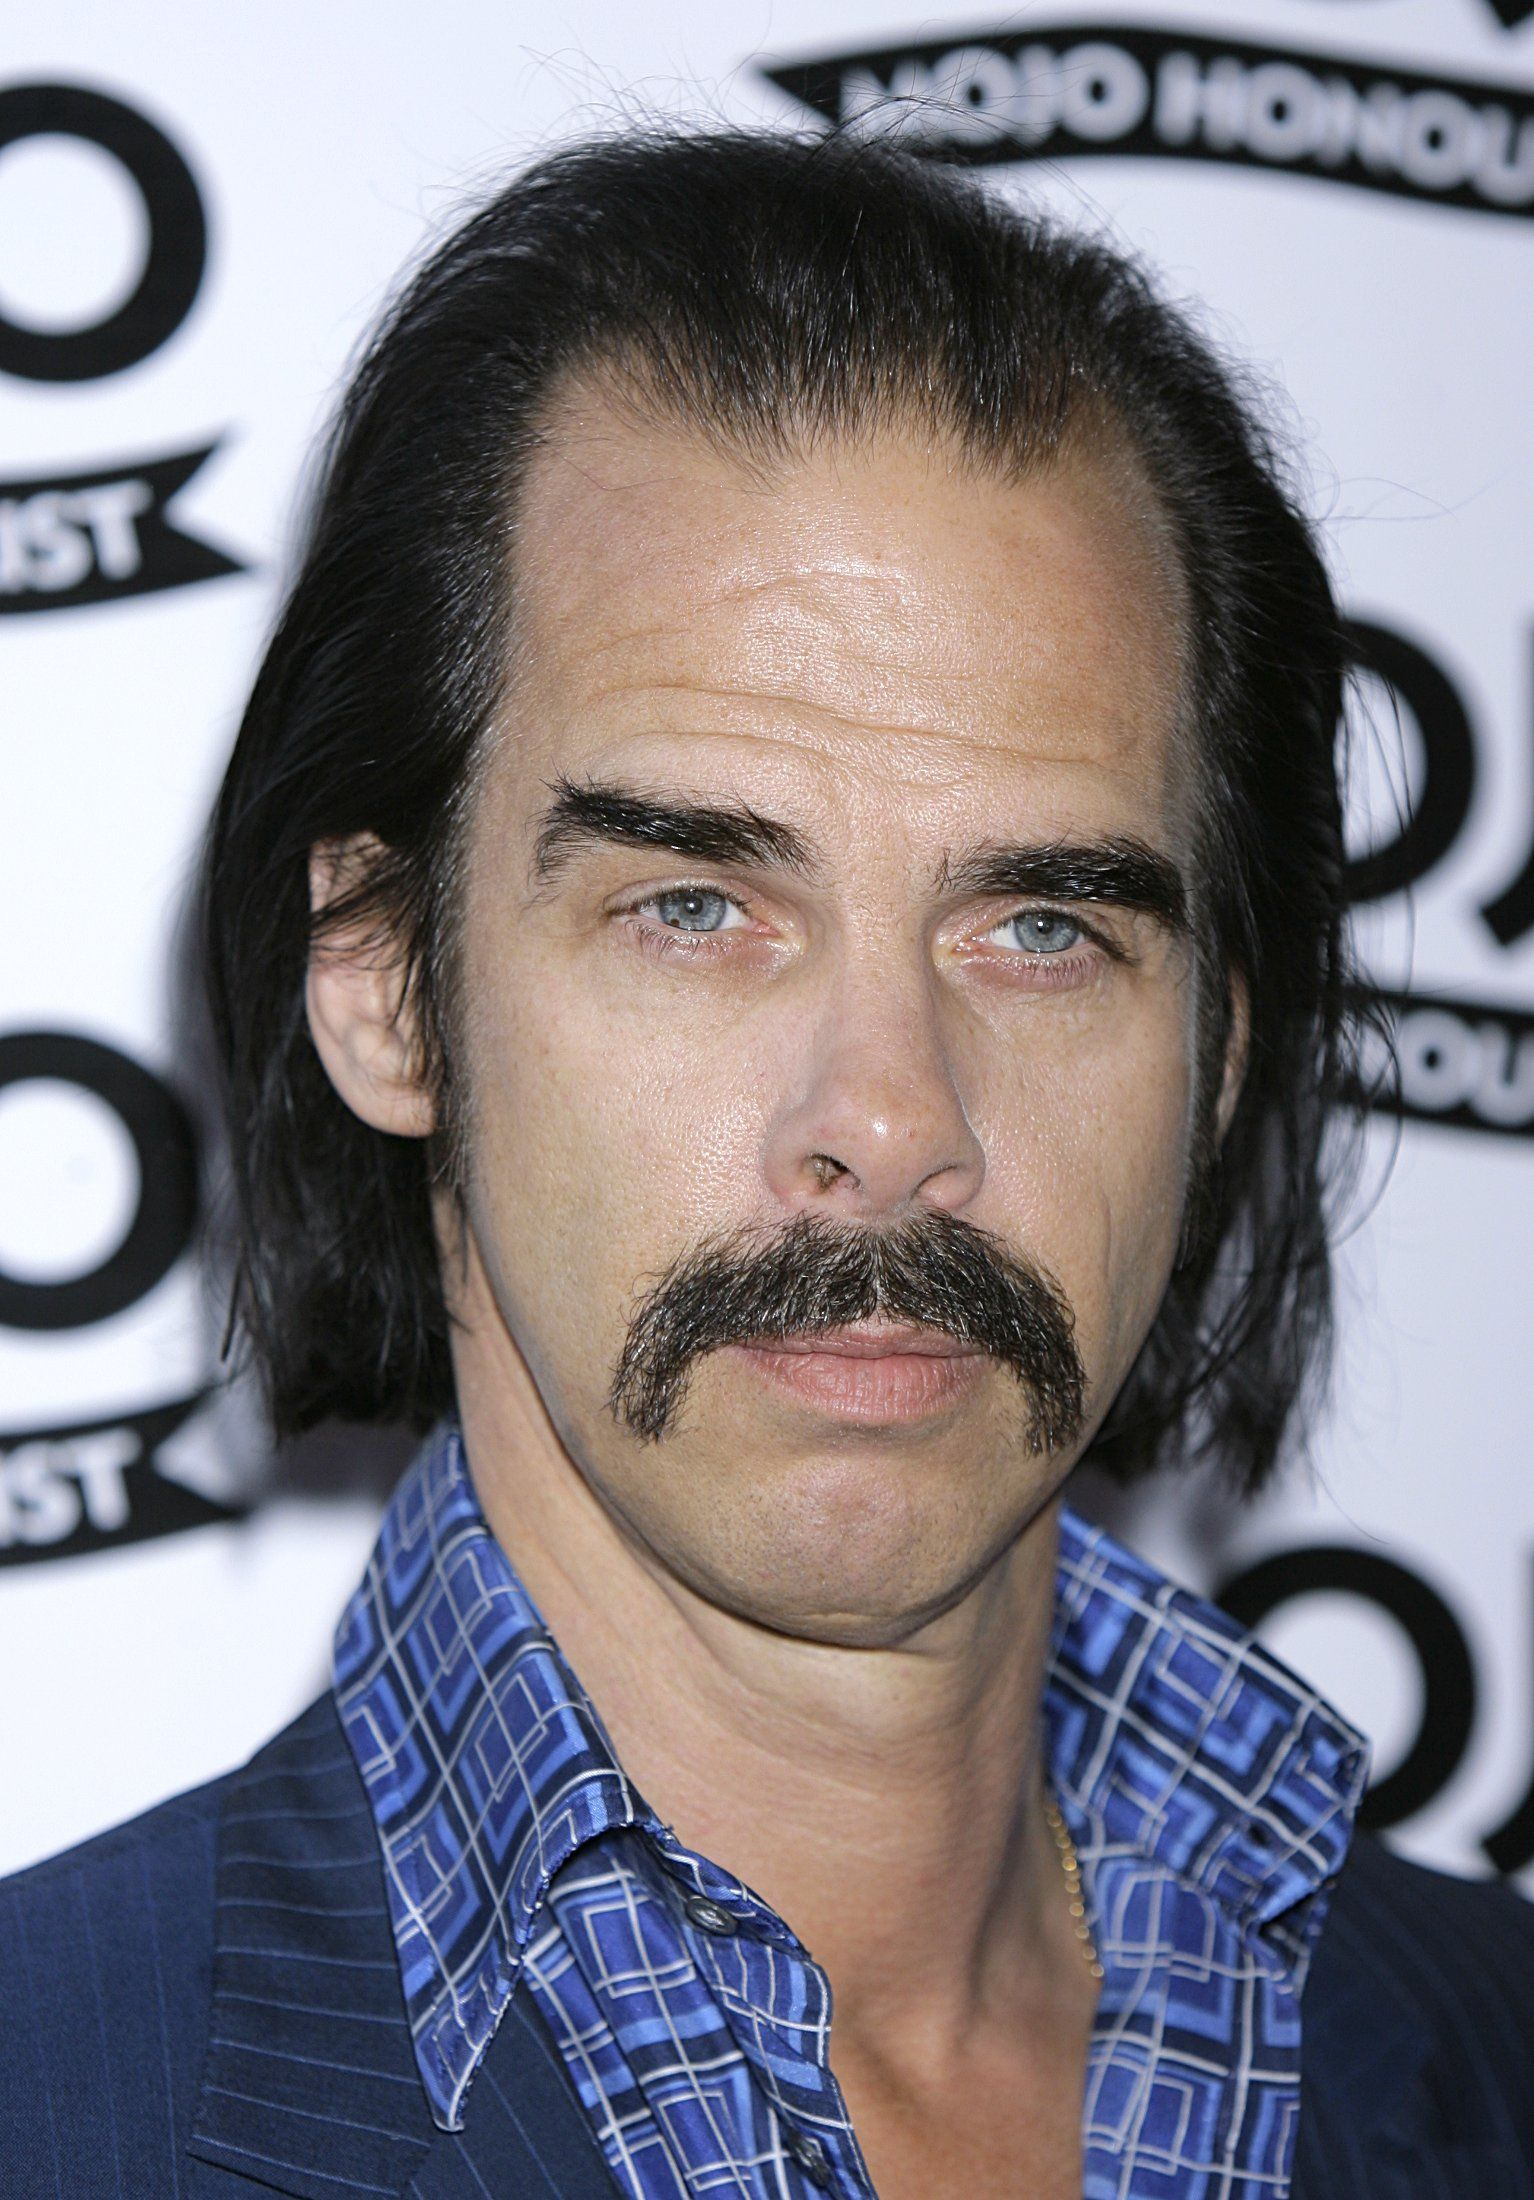 This Is What A Great Mustache Looks Like - GQ